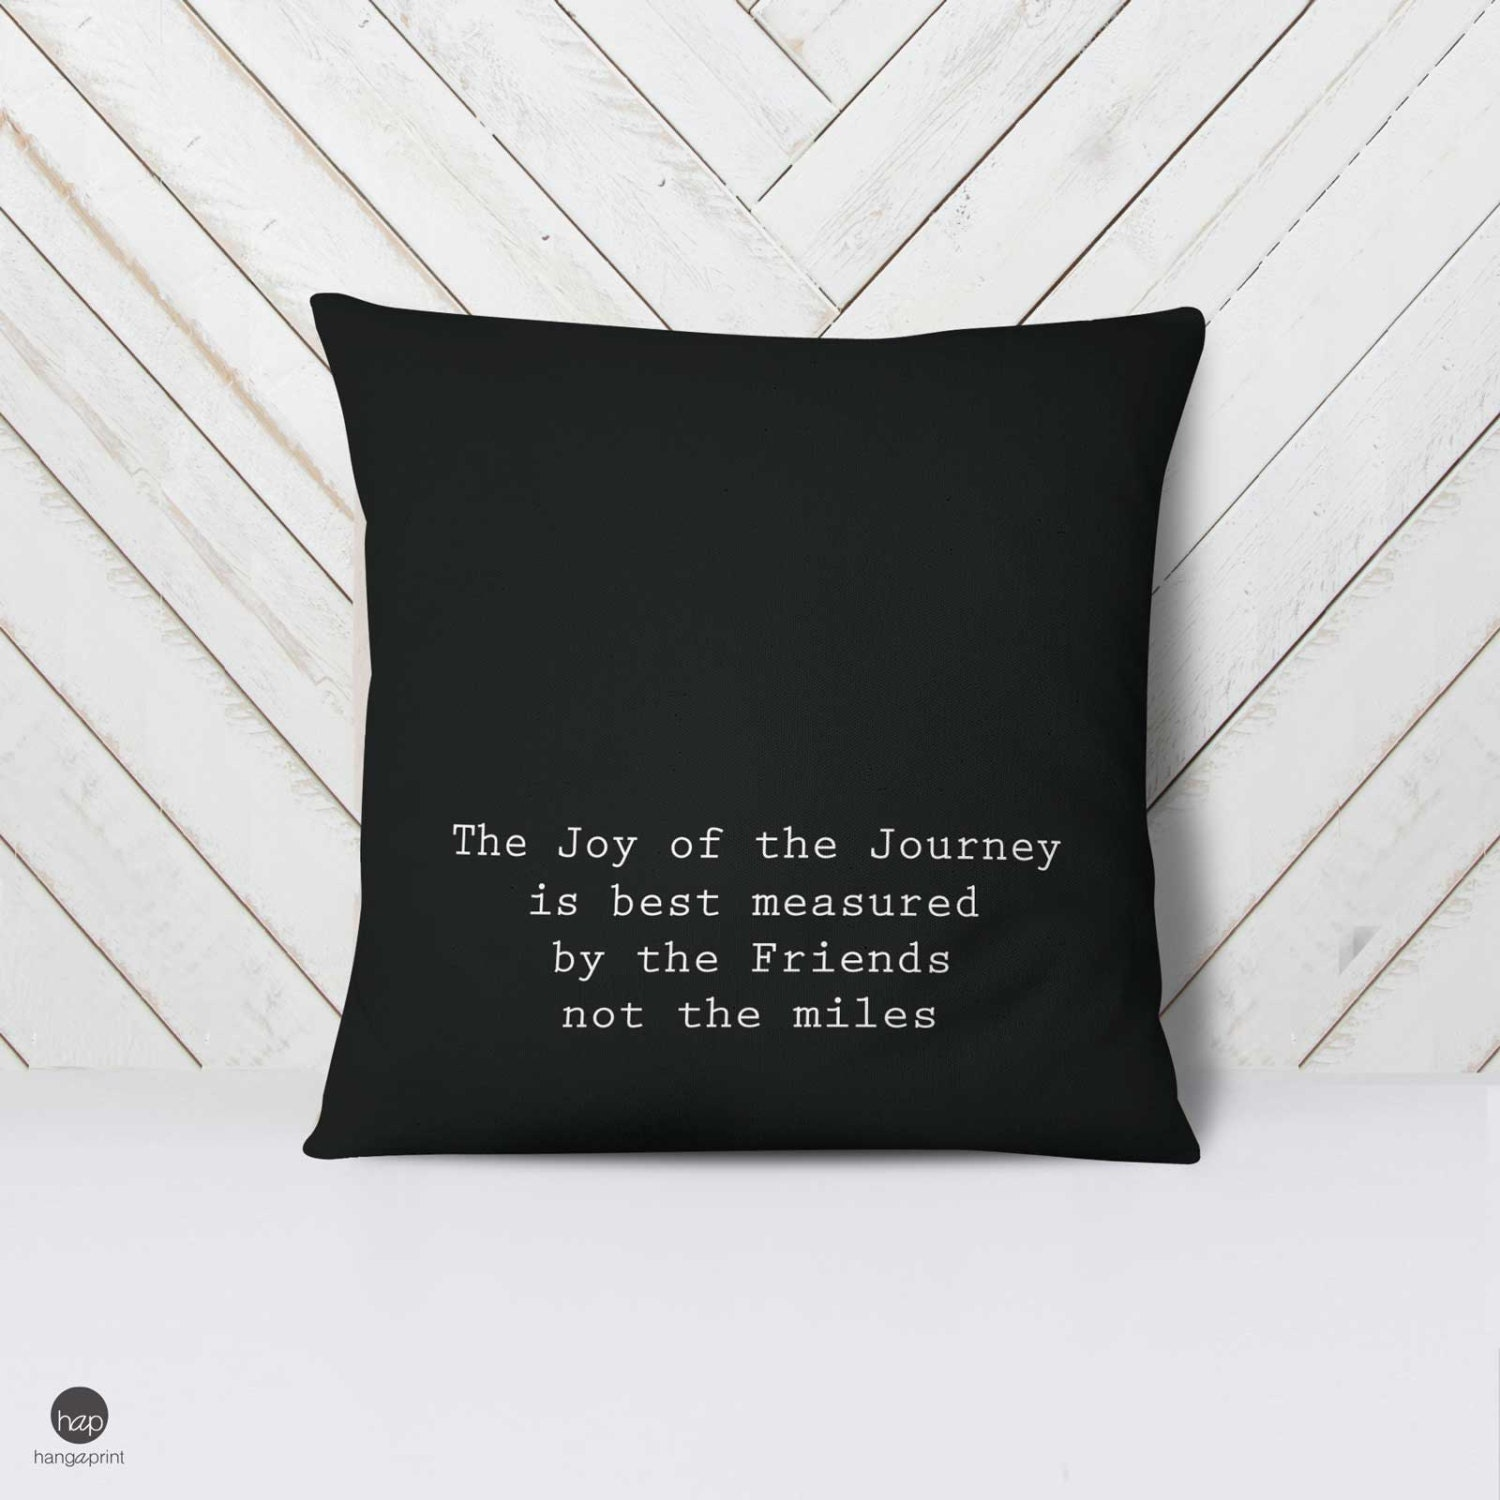 Quotes About Moving Away Moving Away Gift Friends Quotes Pillows With Quotes Pillows